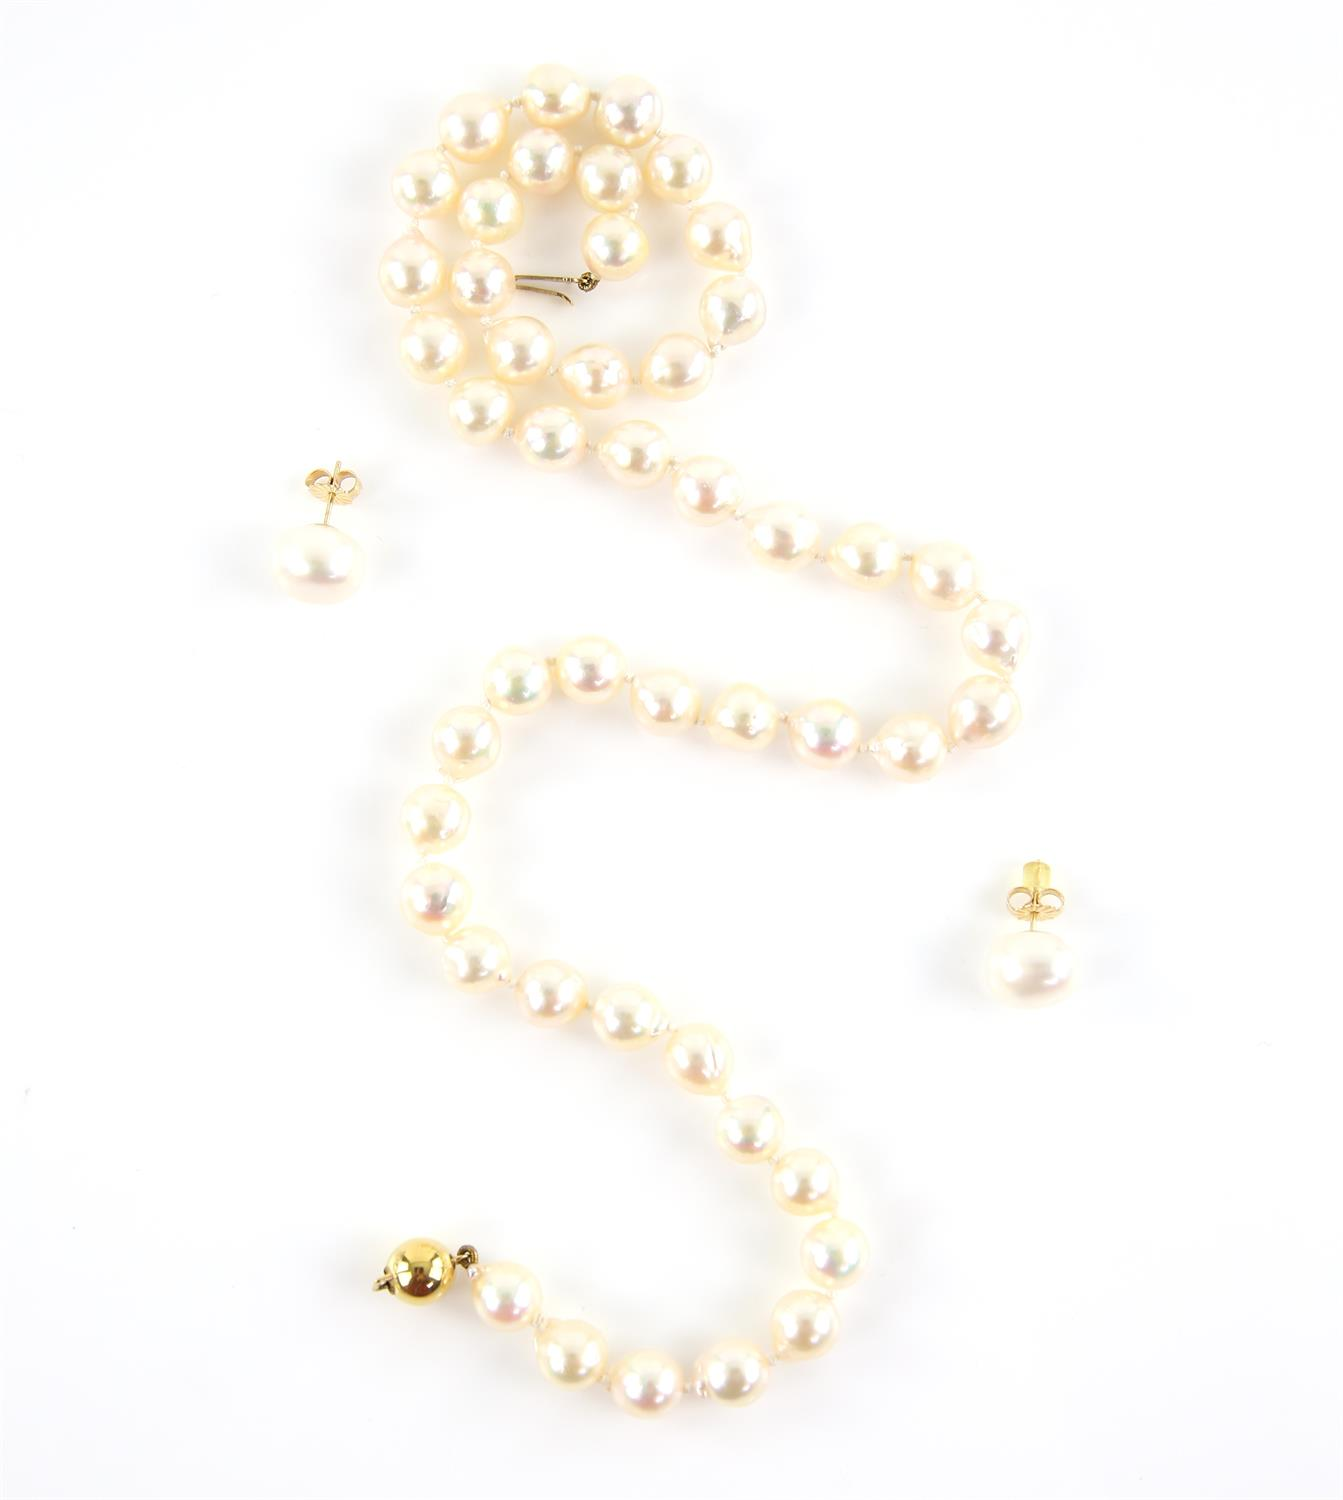 Pearl necklace, comprised of forty-seven 7.9-8.5mm cultured cream pearls, strung with knots,